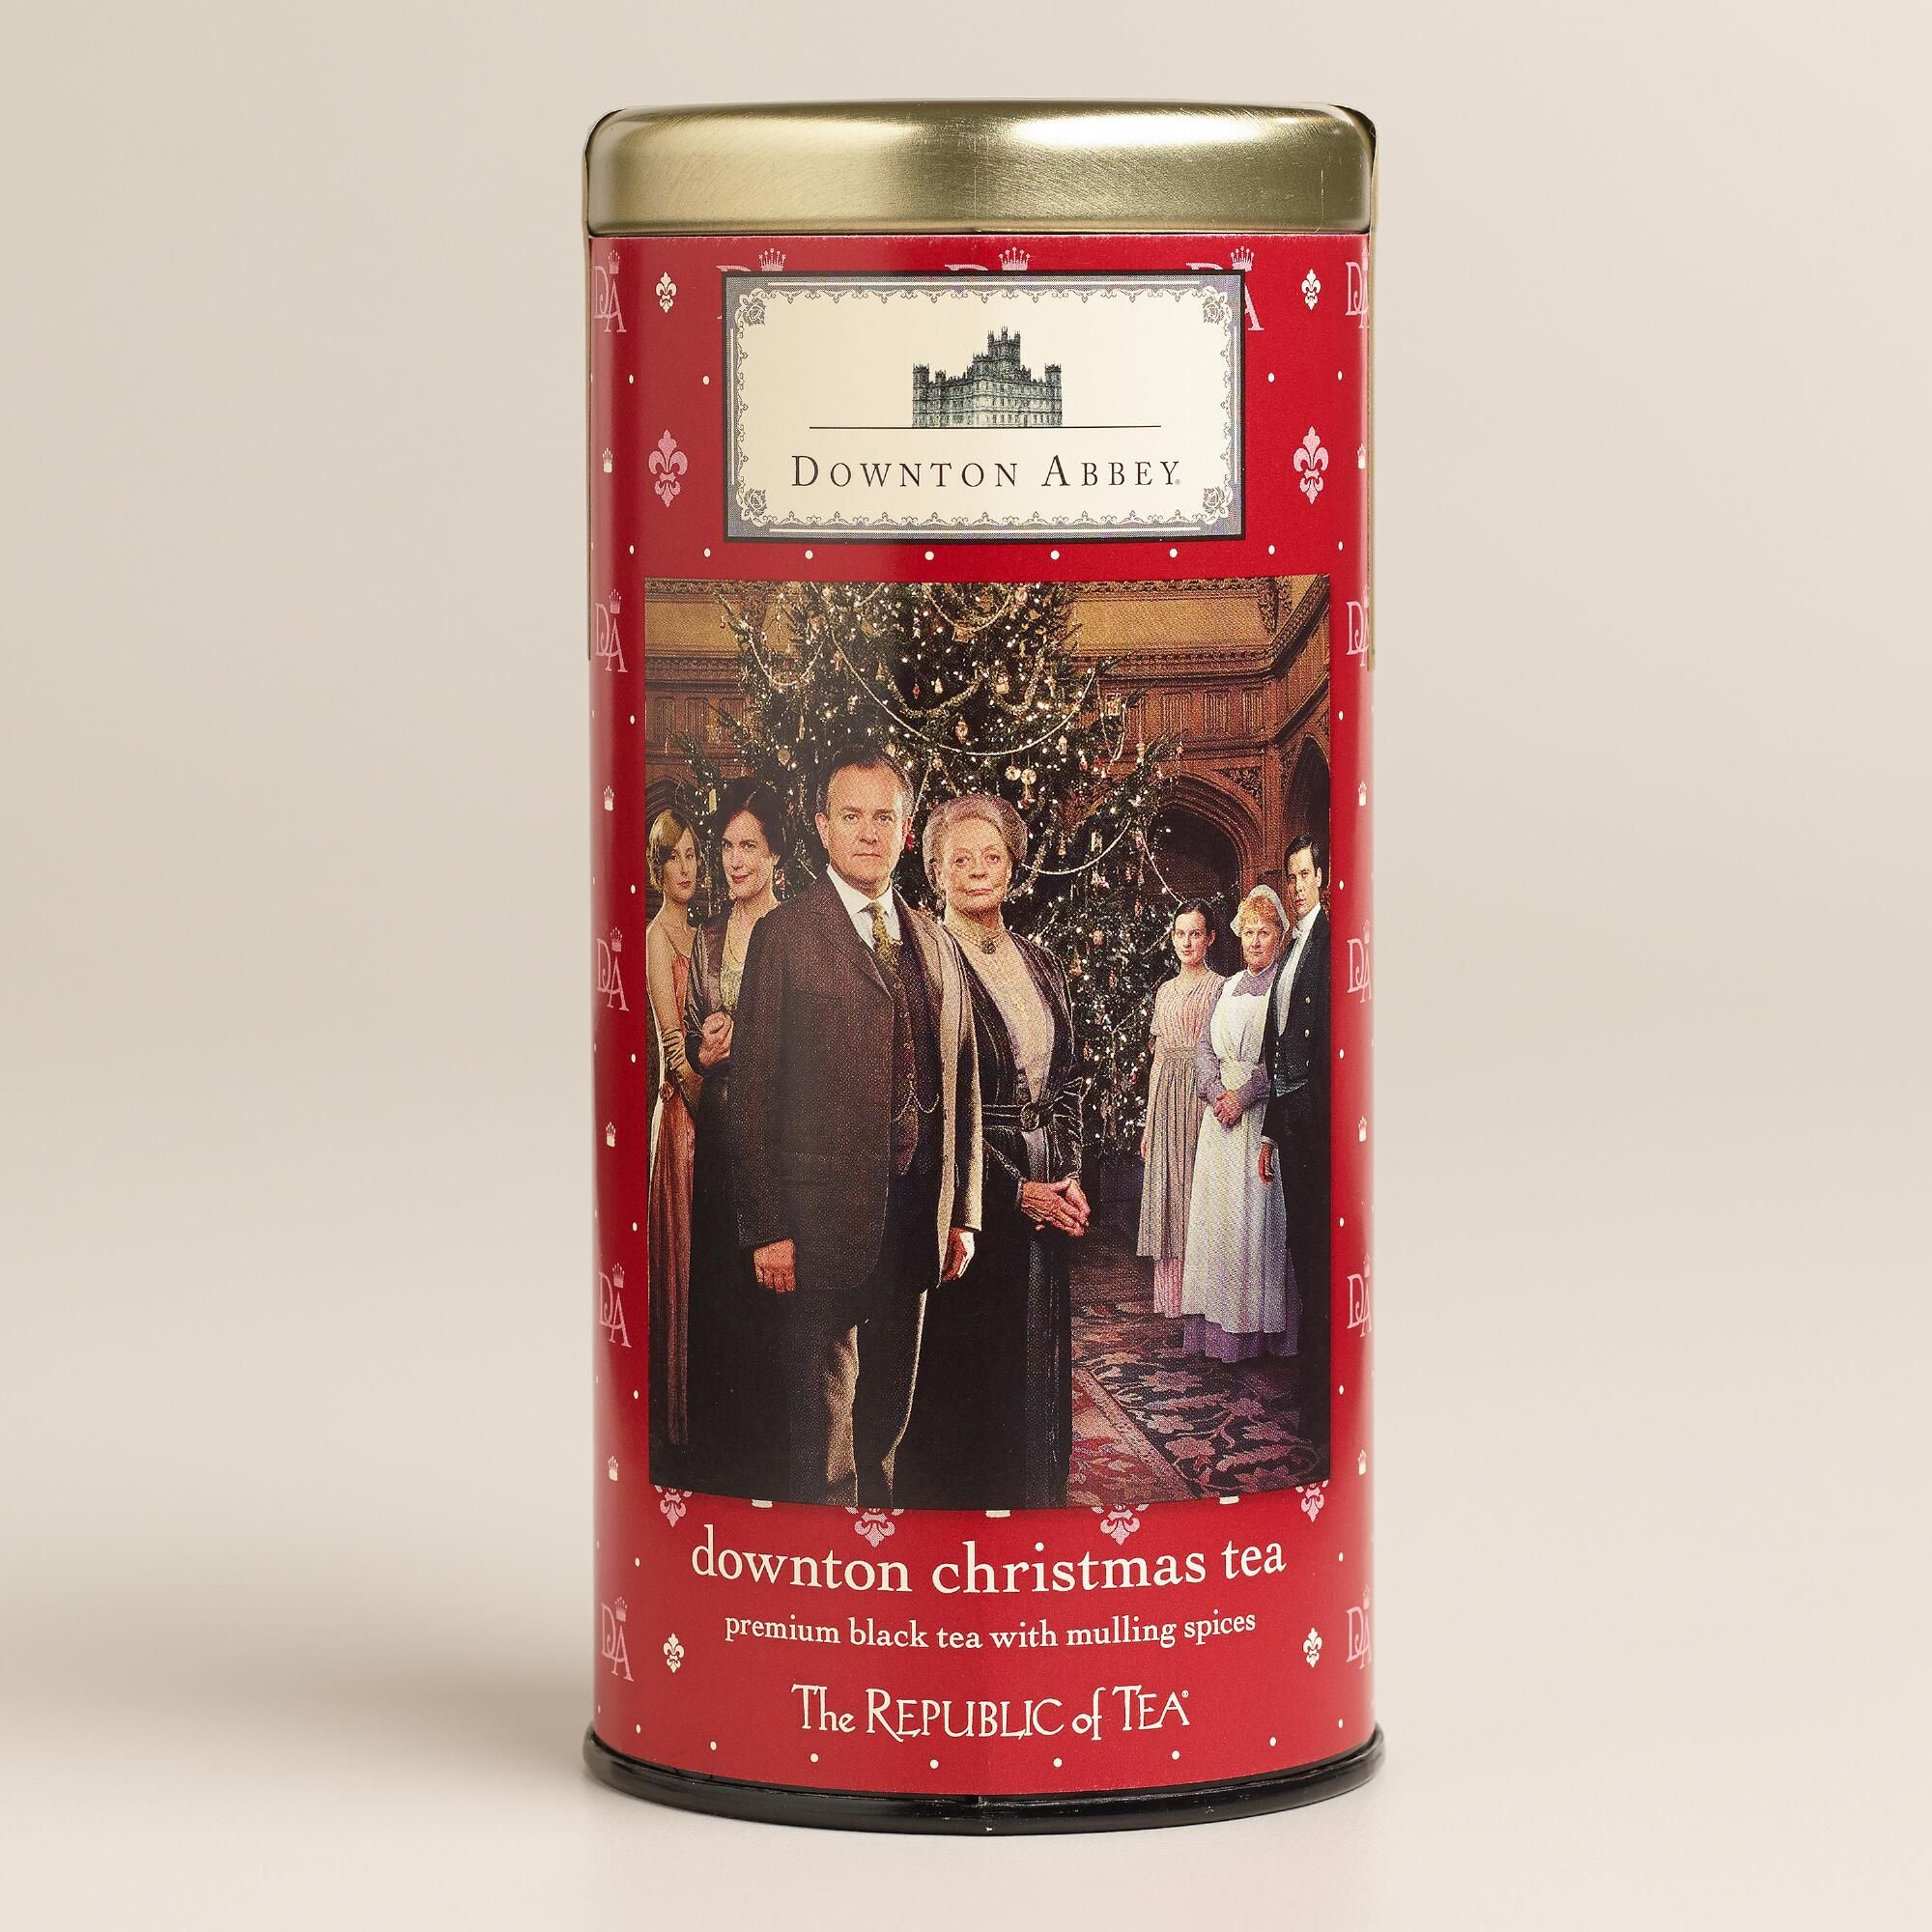 Celebrate the holidays the English way with our Republic of Tea Downton Abbey Christmas Tea. Its spicy aromas and soothing flavors offer a relaxing counterpoint to a season of celebration.